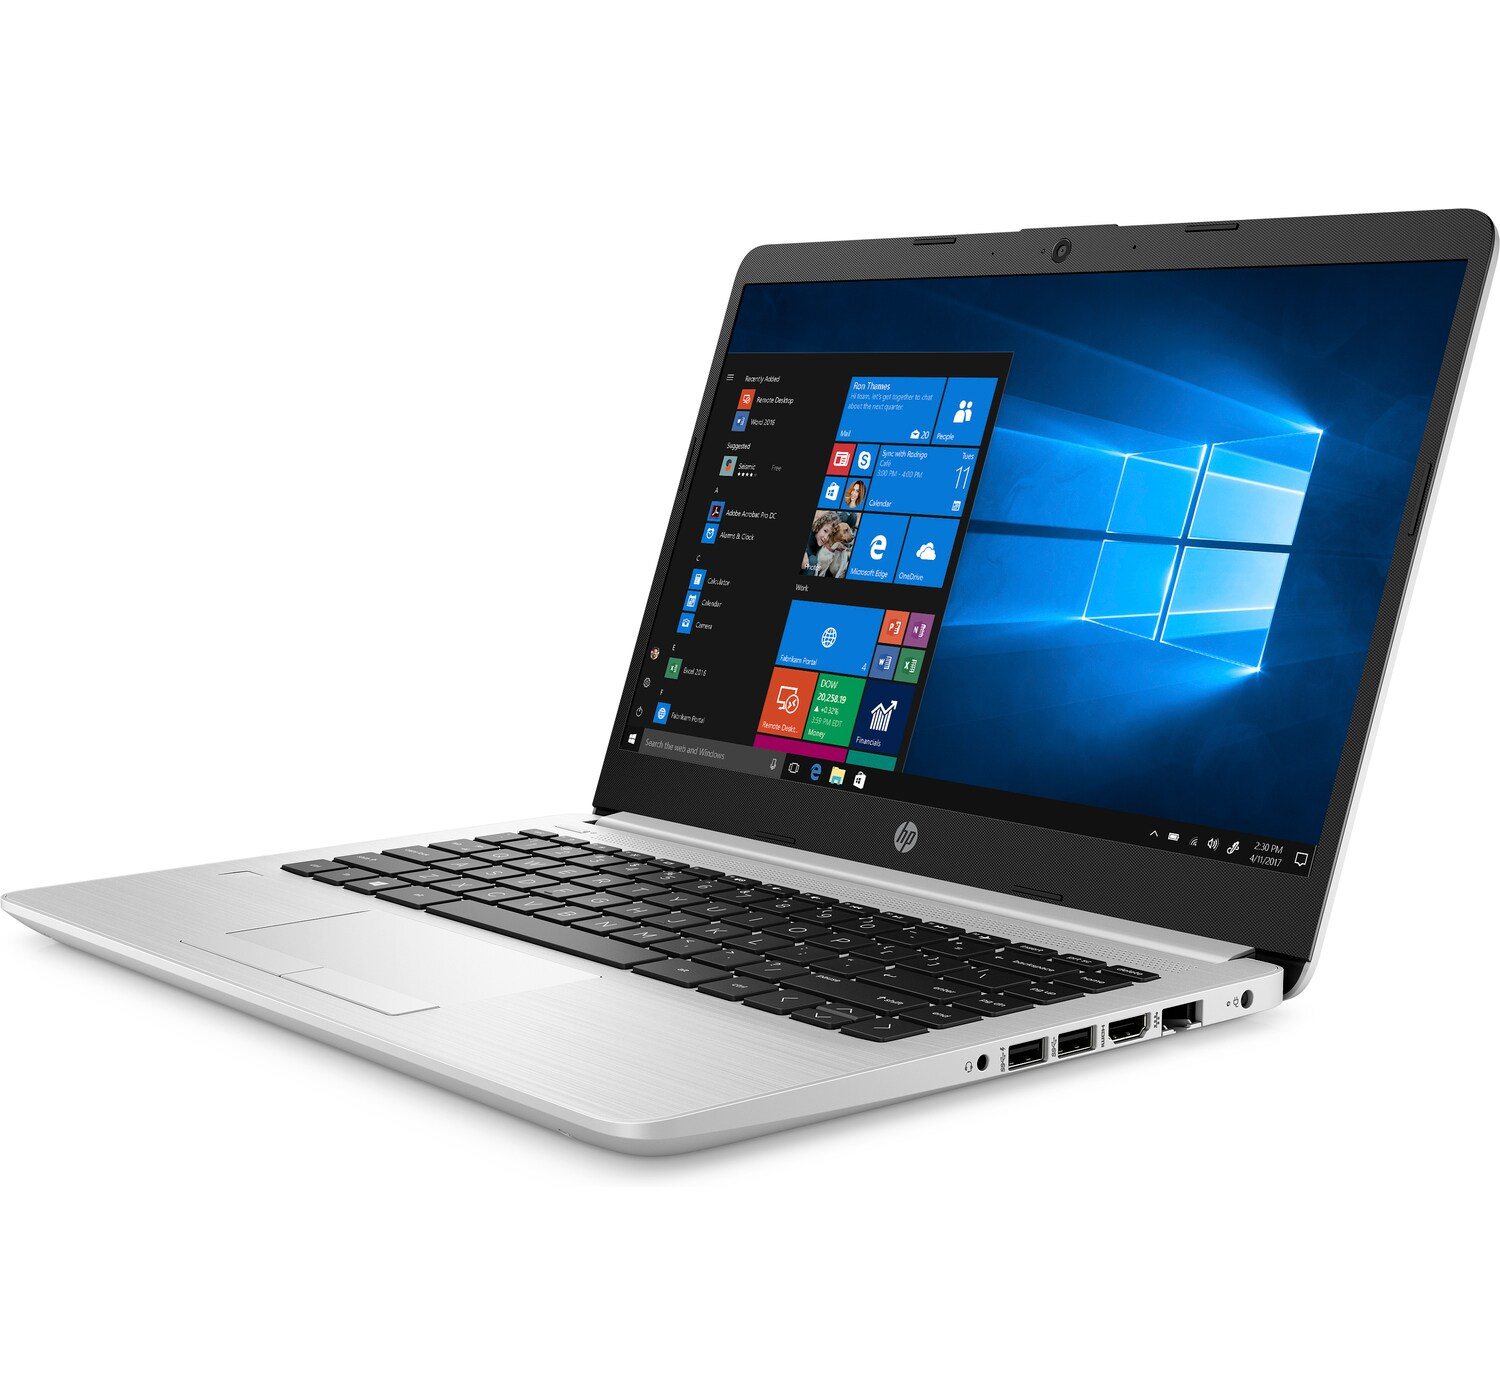 HP 348 G7 Laptop 9FJ35PA 14inch LED HD i7-10510U 8GB DDR4 1TB HDD DOS